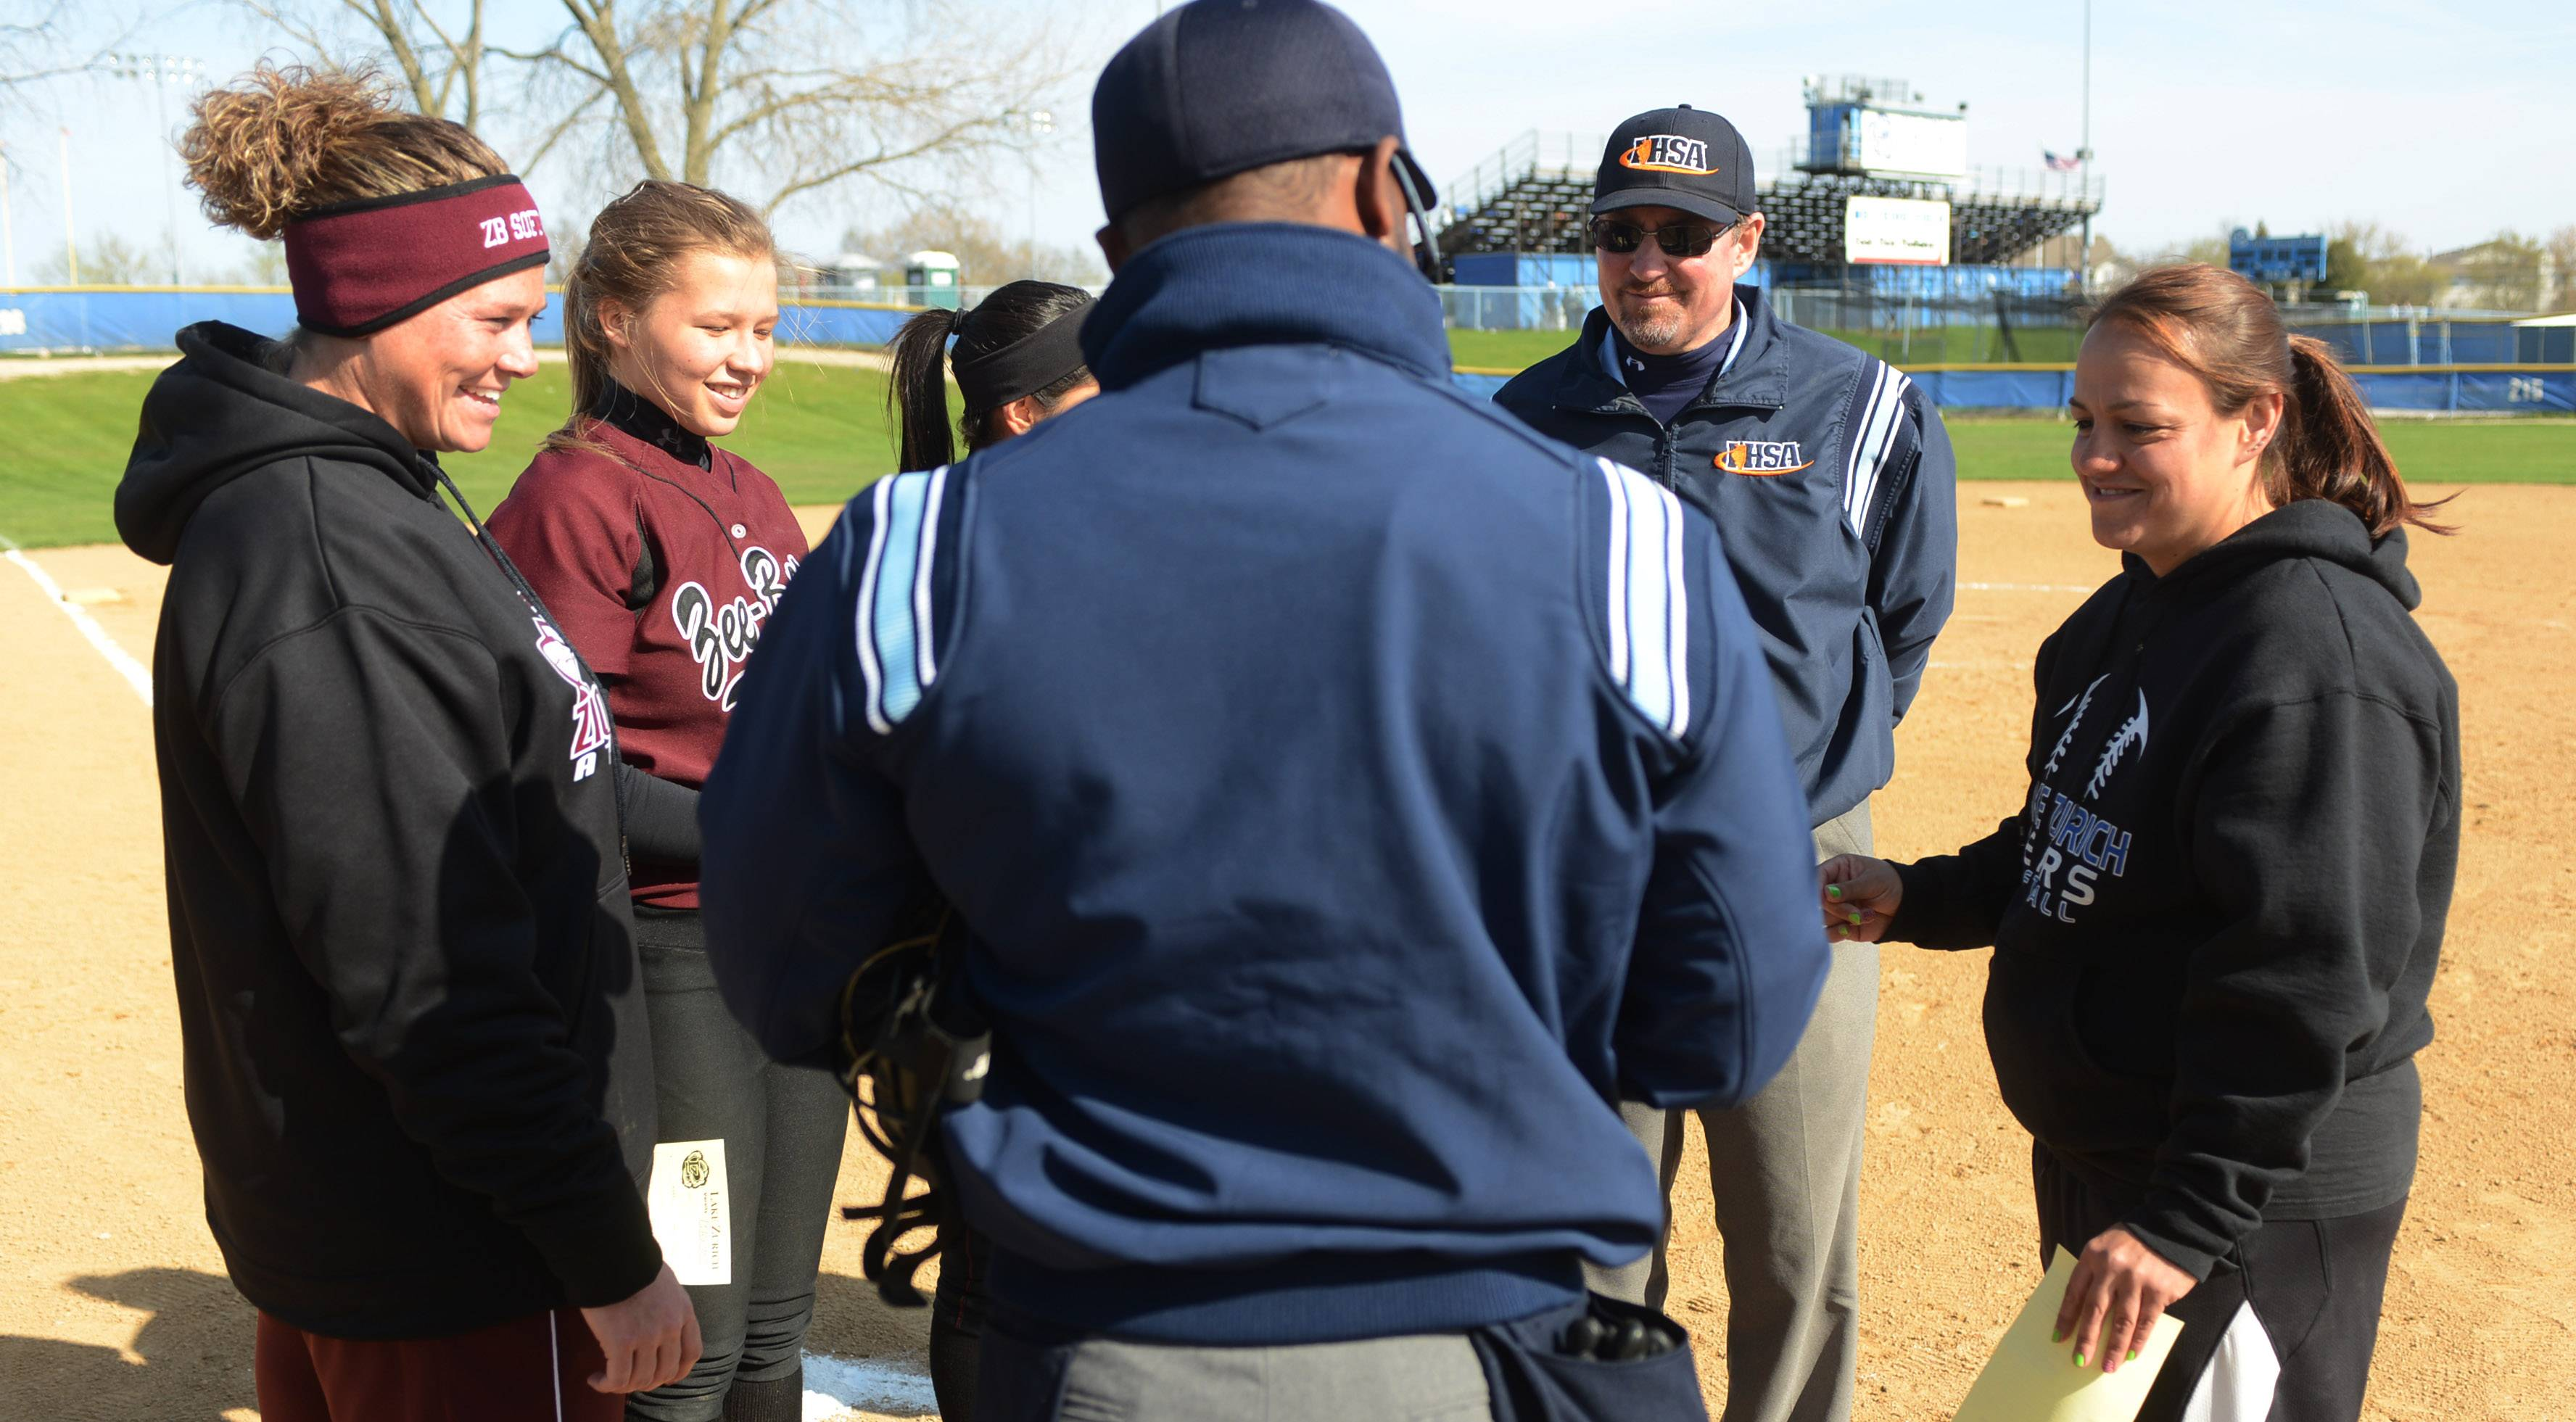 Zion-Benton coach Tina Meyer, left, and Lake Zurich coach Amanda Rodriguez, right, get instructions at the start of Monday's softball game in Lake Zurich. The two coaches played softball together at Round Lake High School.